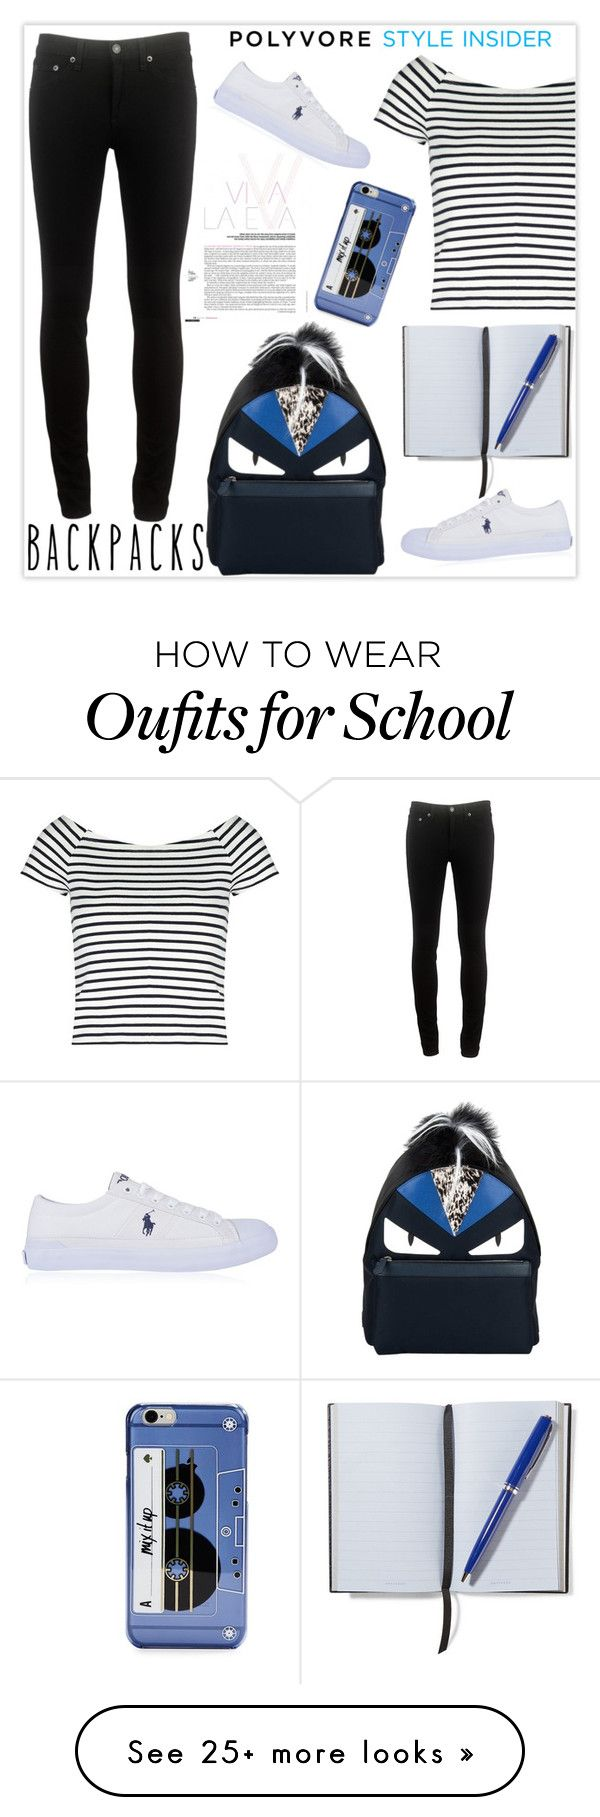 """""""Rule School: Cool Backpacks"""" by snje2105 on Polyvore featuring Lipsy, rag & bone, Polo Ralph Lauren, Kate Spade, Fendi, Smythson, backpacks, contestentry and PVStyleInsiderContest"""